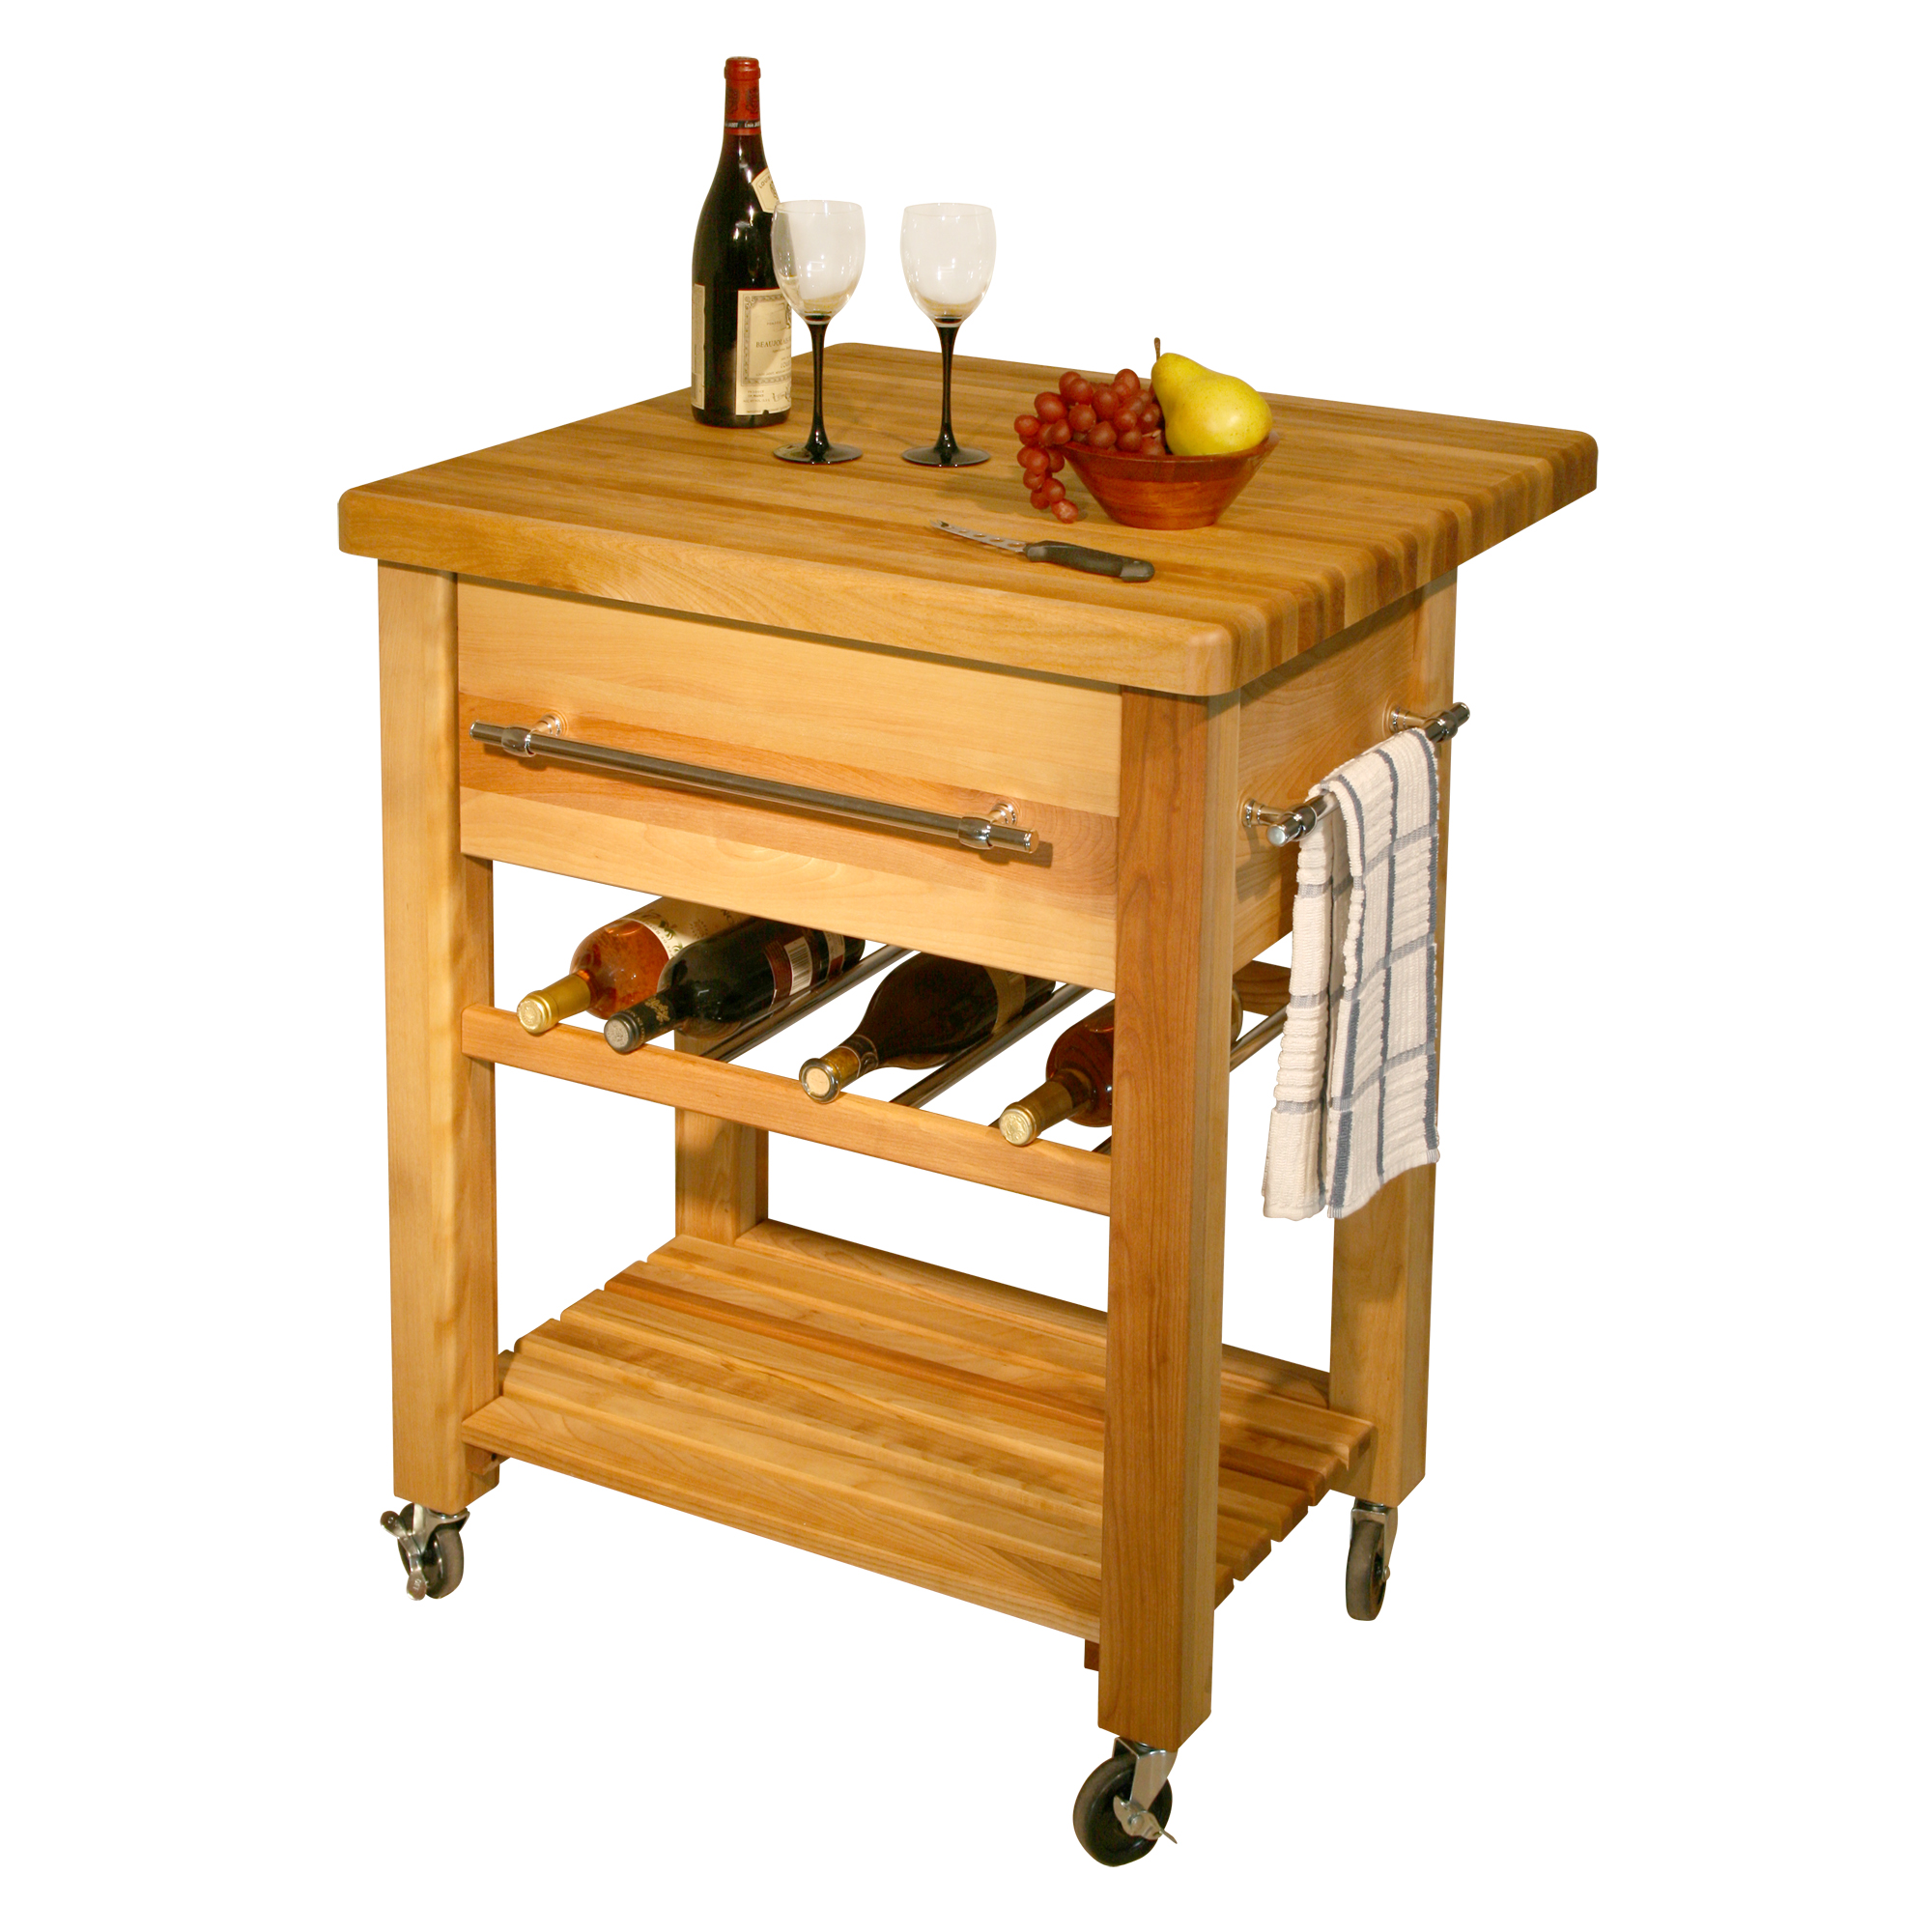 Butcher Block Kitchen Workcenter With Wine Rack